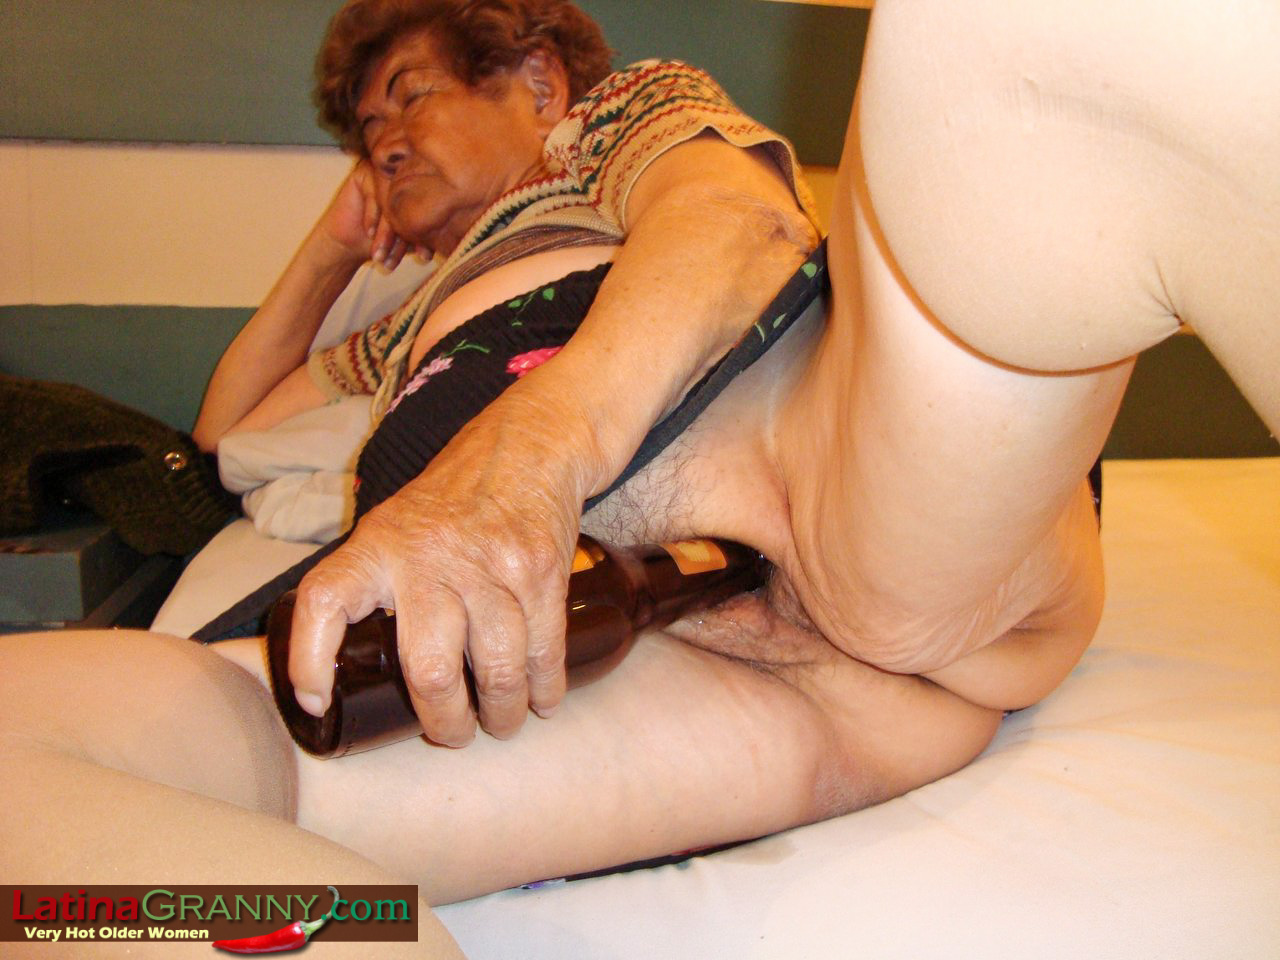 click here and see GRANNY 60 ++